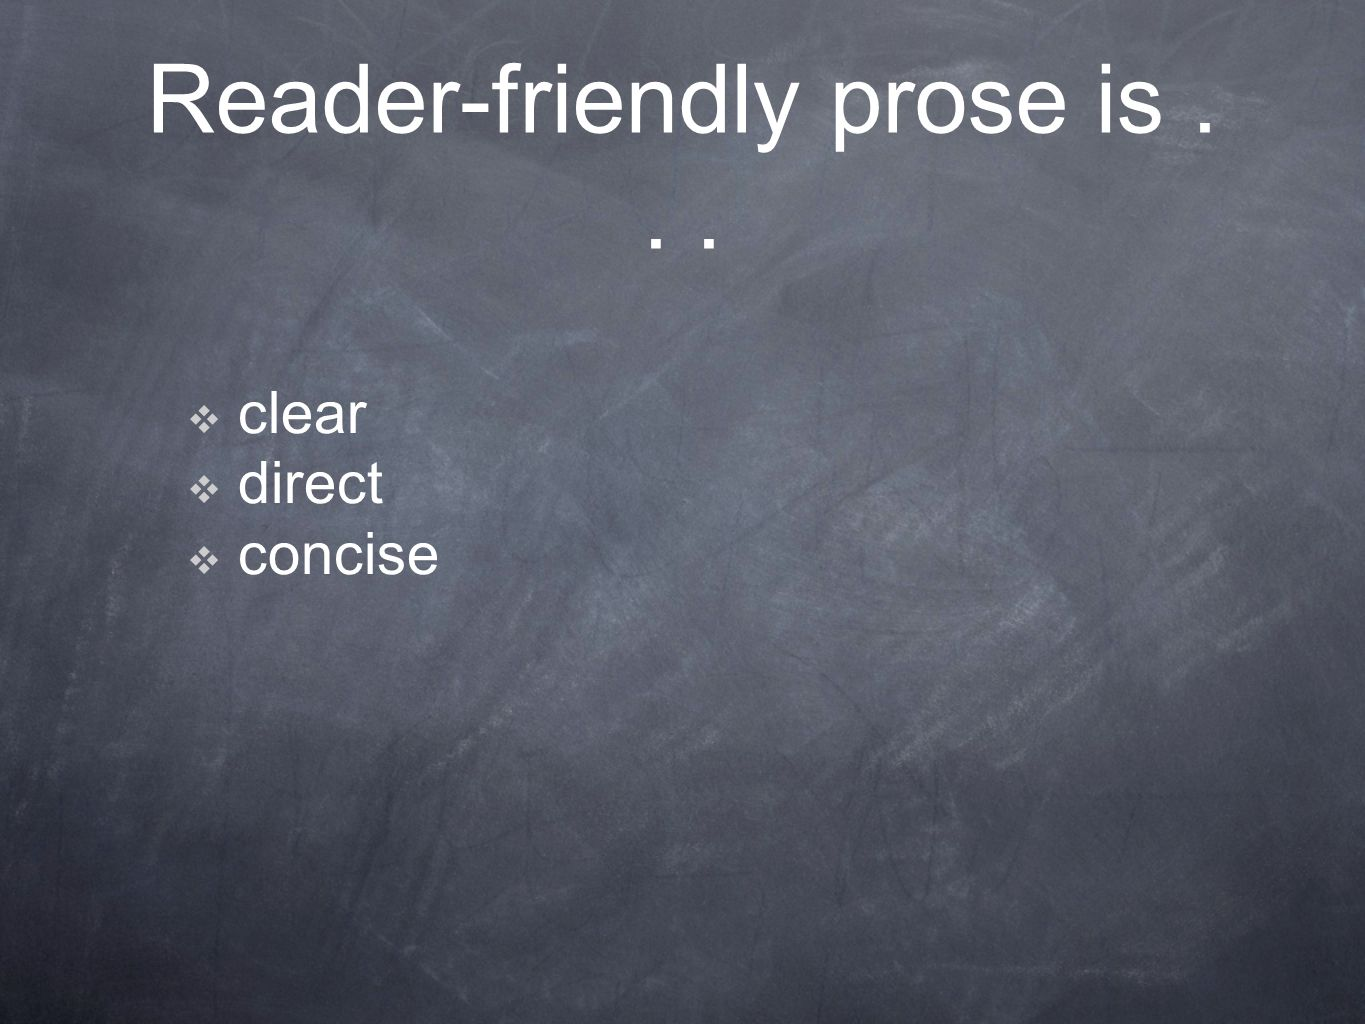 Reader-friendly prose is...  clear  direct  concise